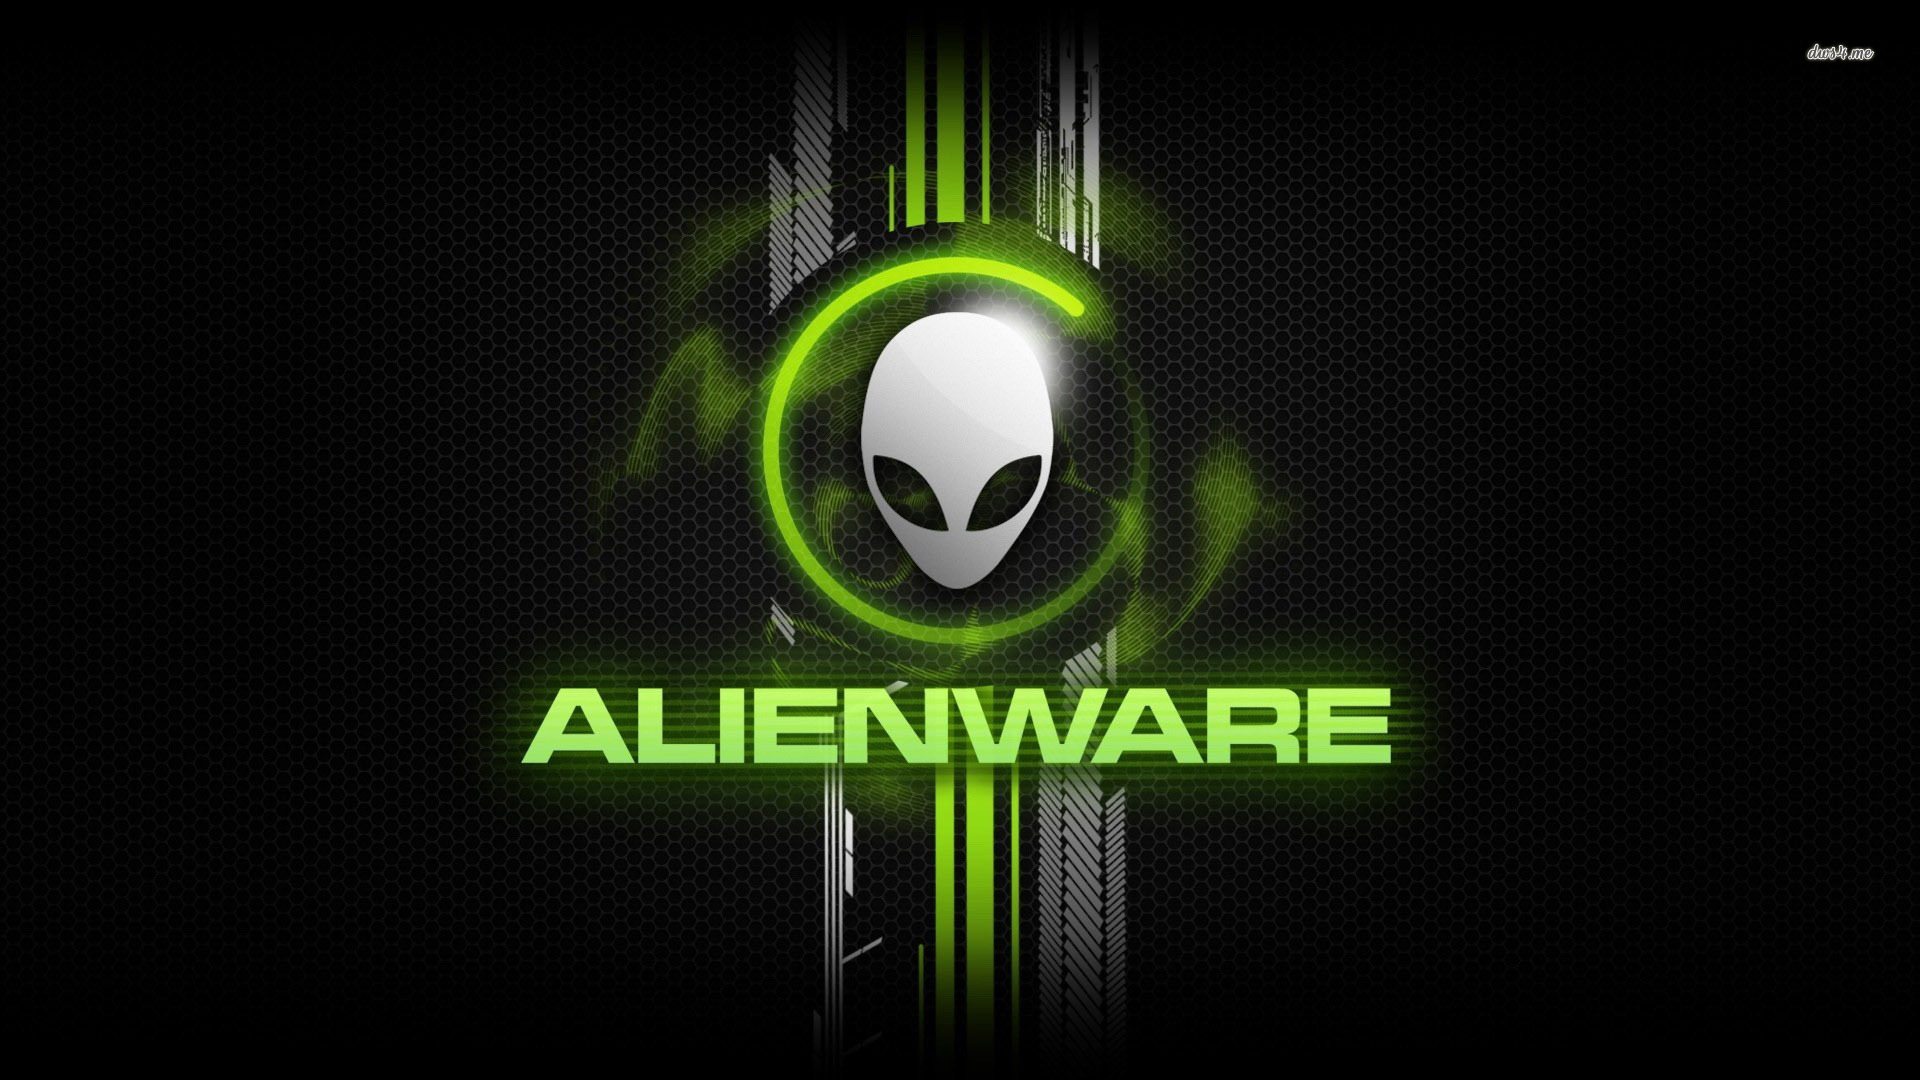 Alienware Wallpaper 2560 X 1440 - WallpaperSafari